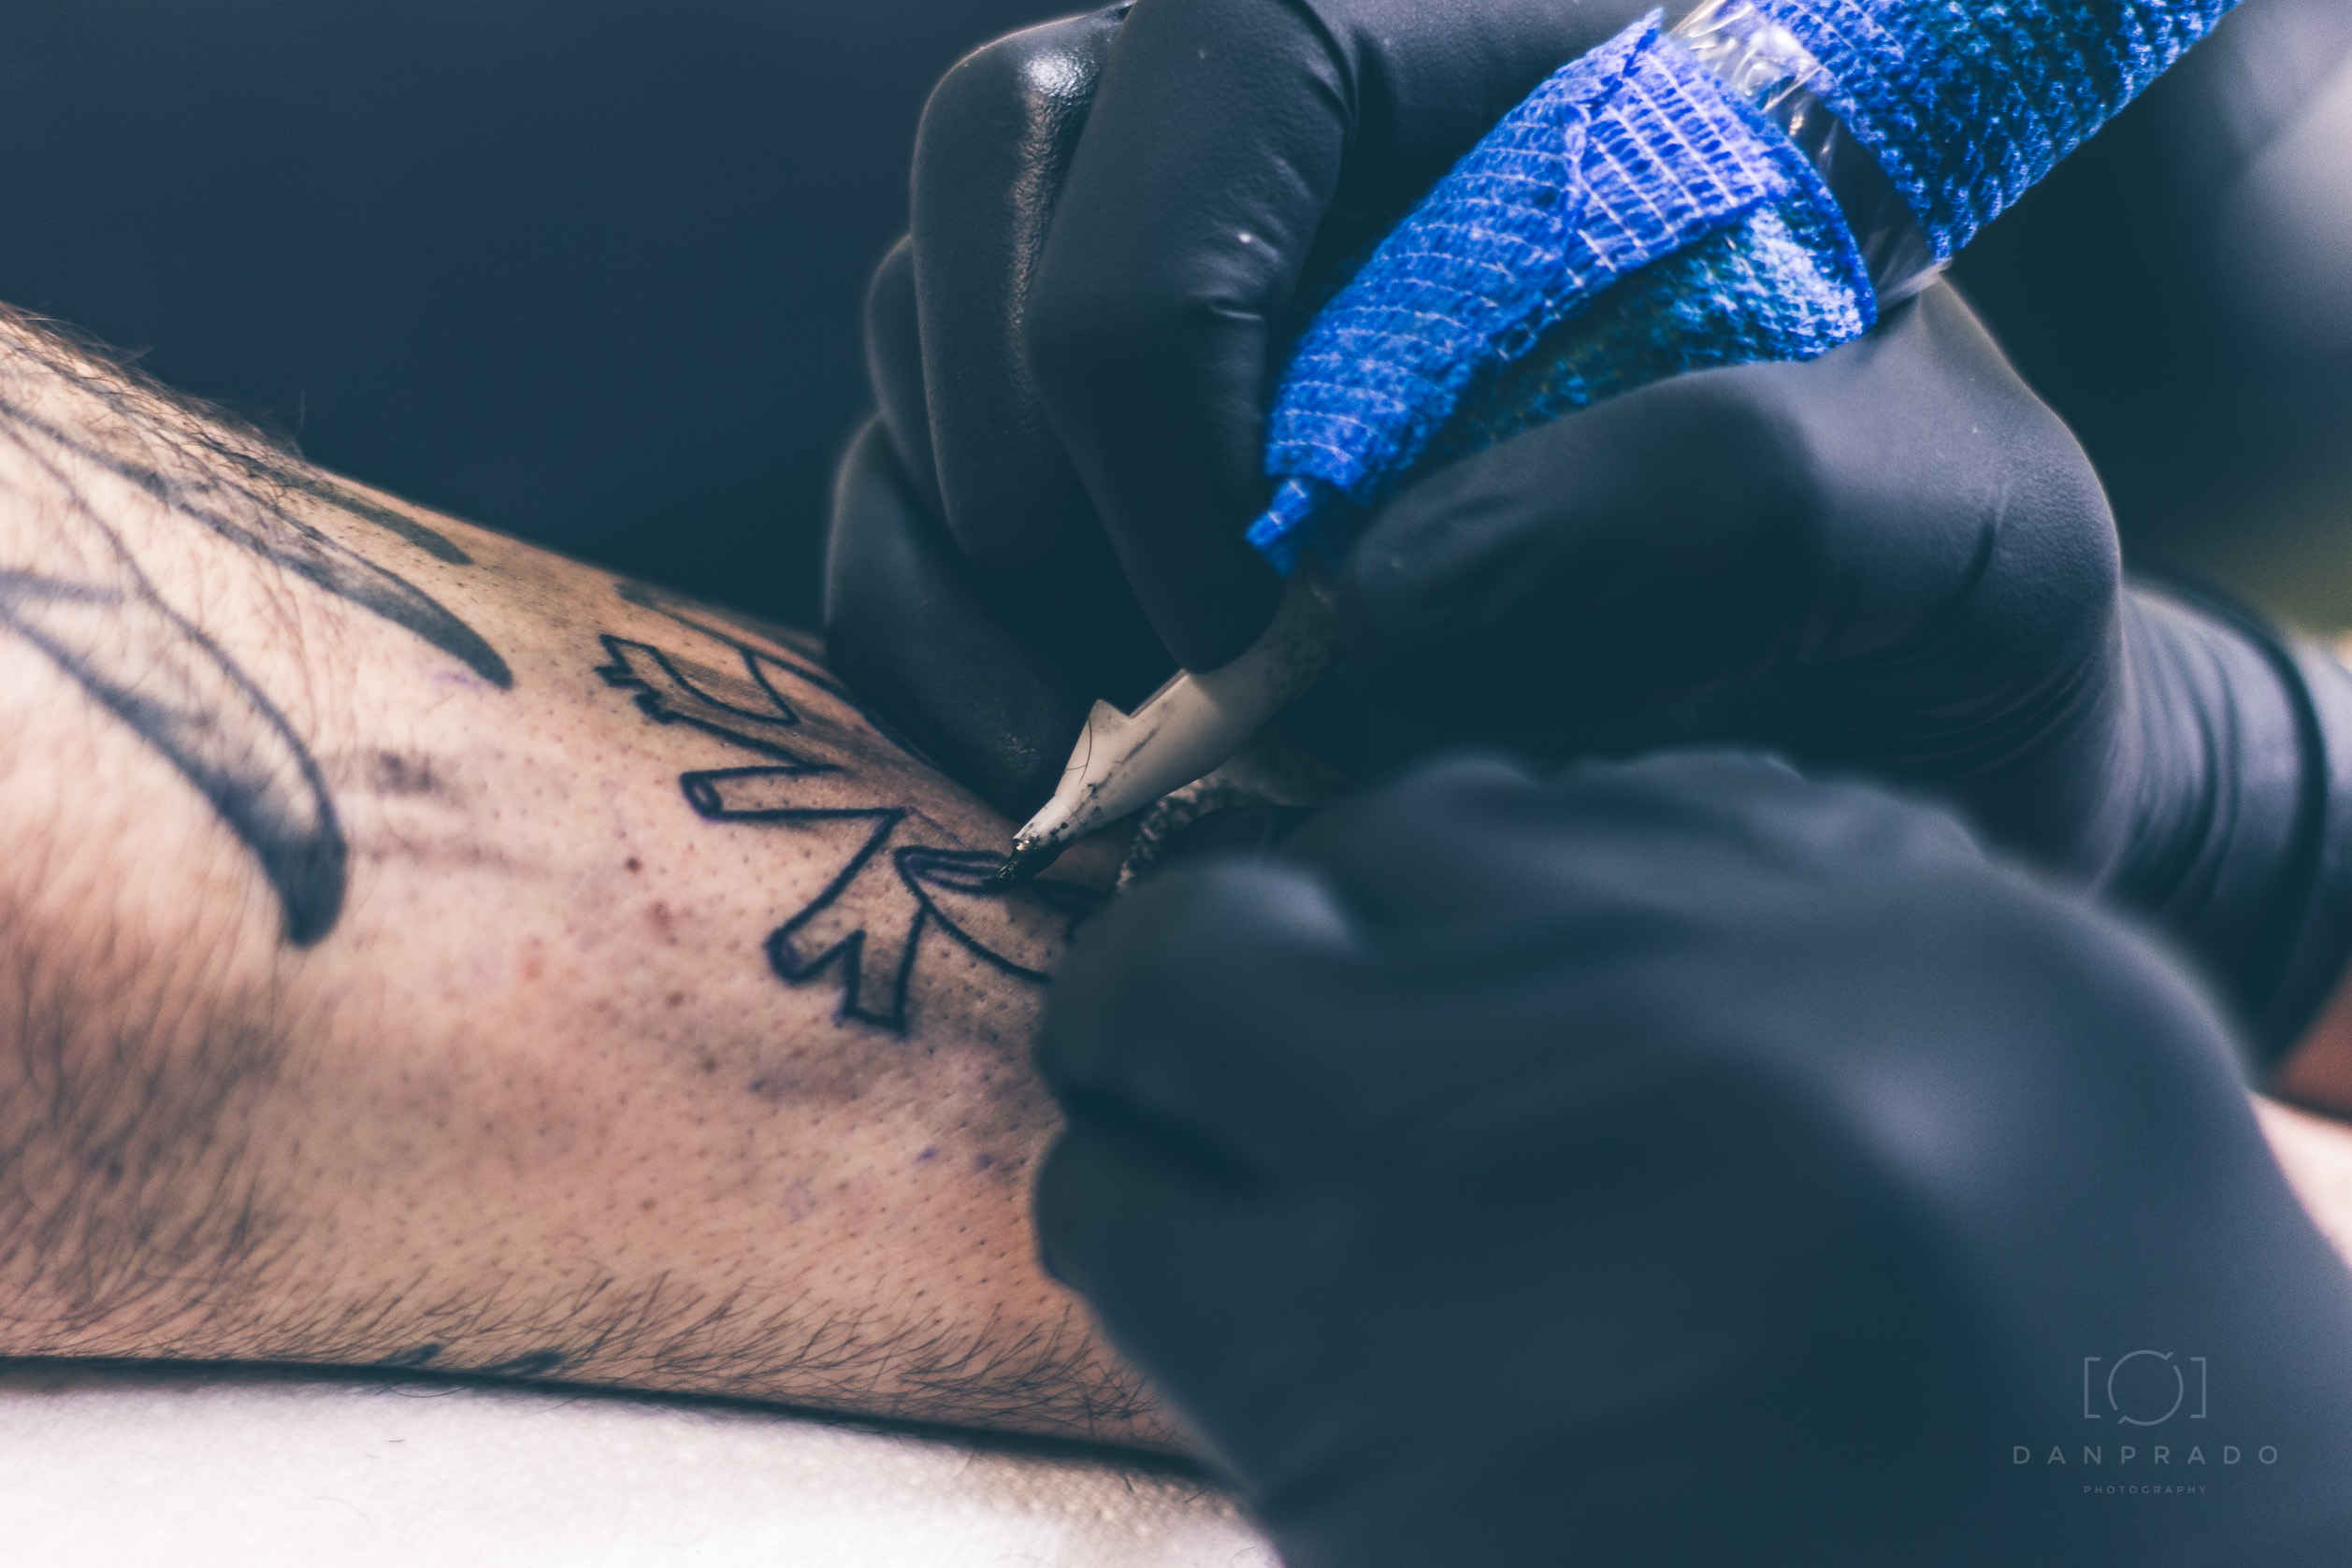 I Ve Got You Under My Skin The Science Behind Tattooing Scientific Scribbles A second skin shields your tattoo from the outside world. i ve got you under my skin the